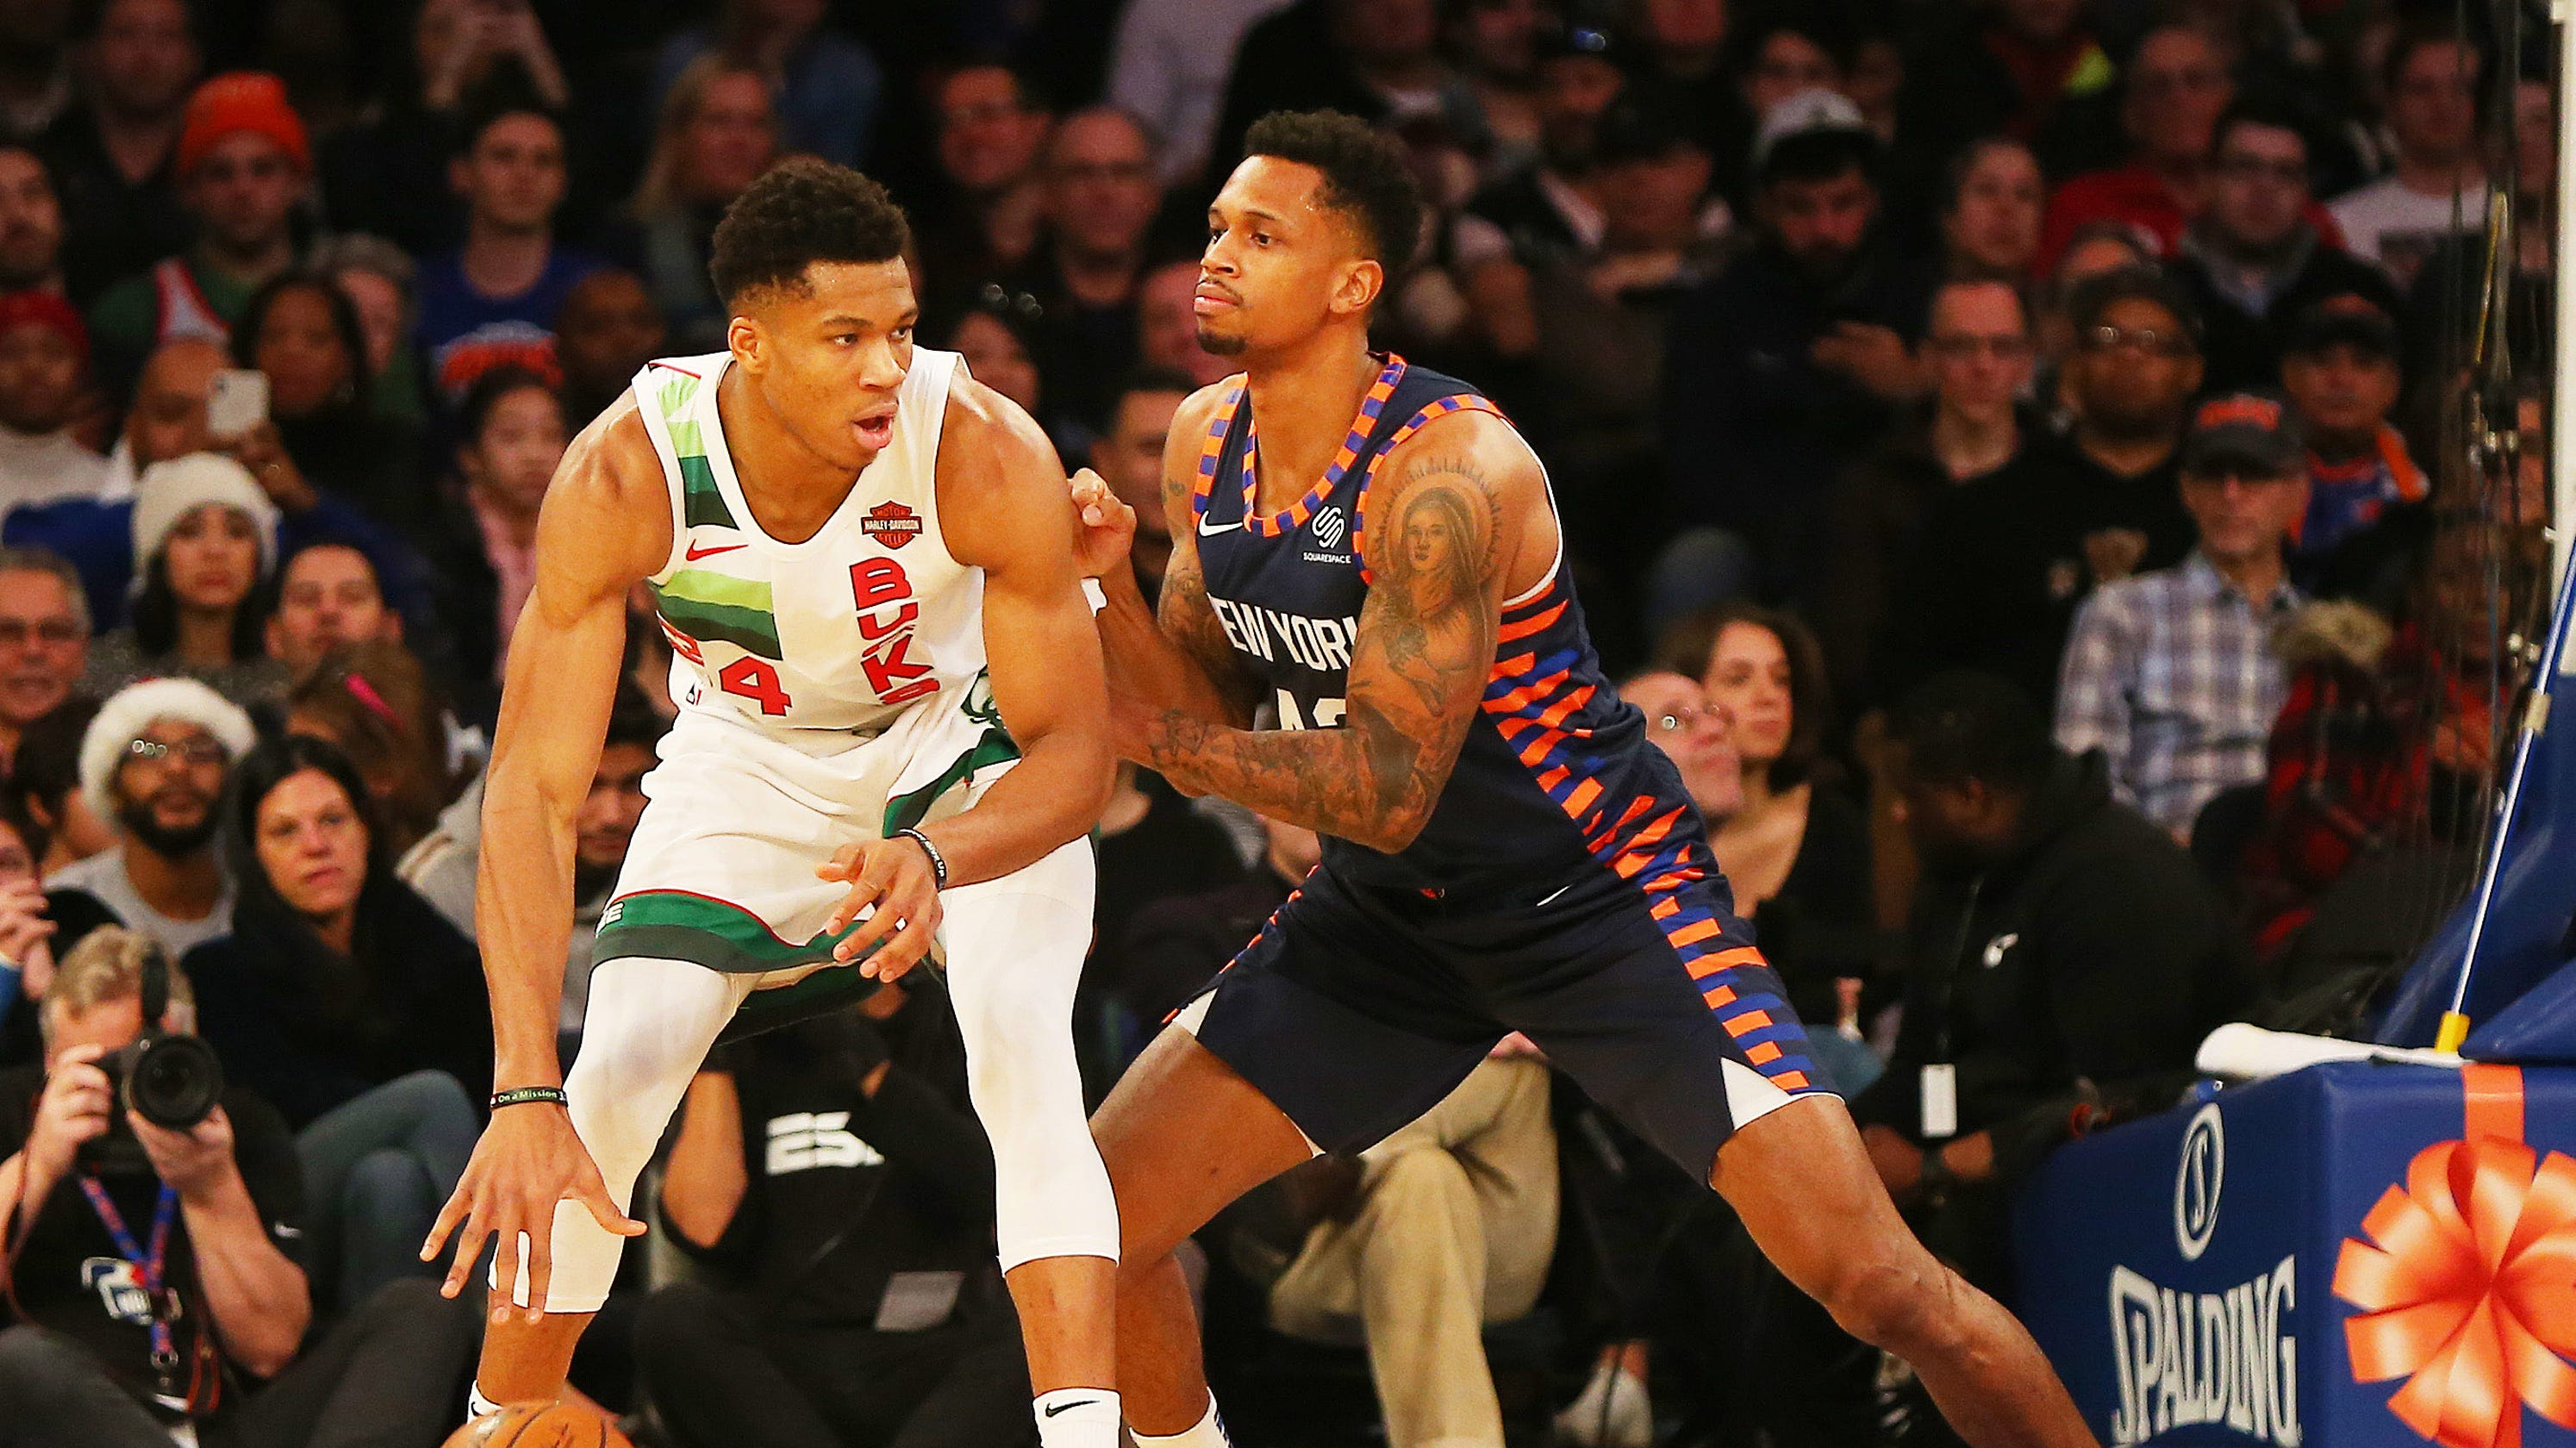 cac188bedd4 NBA  Bucks topple Knicks for first Christmas Day win since 1977